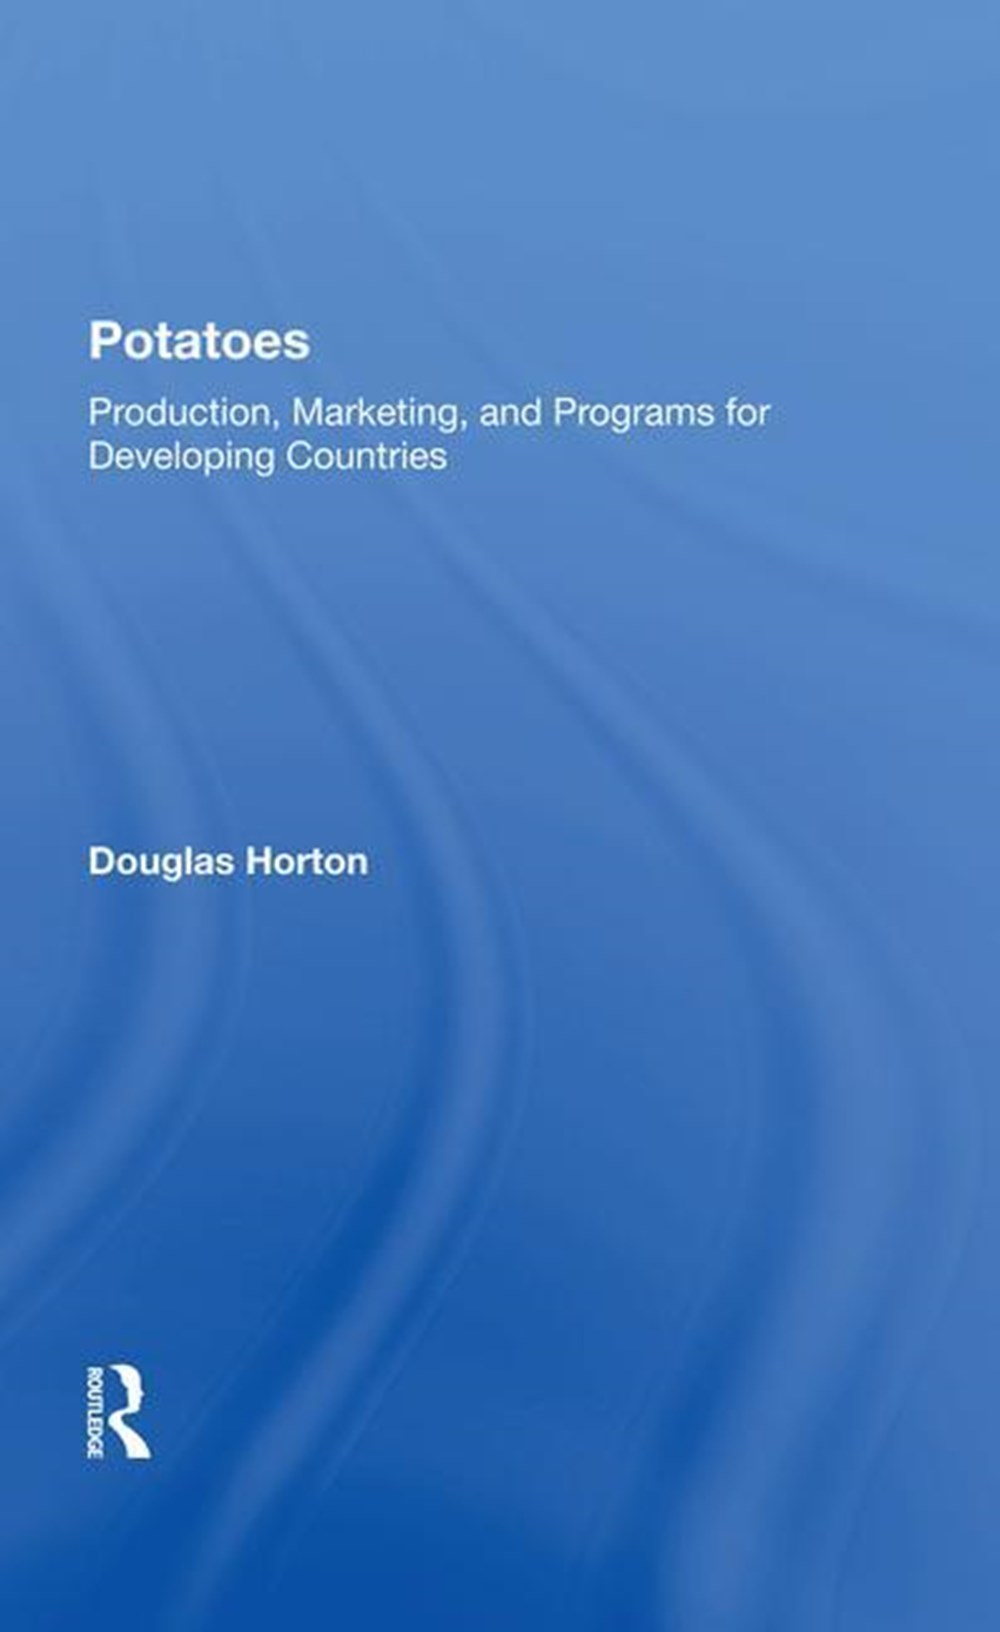 Potatoes Production, Marketing, and Programs for Developing Countries